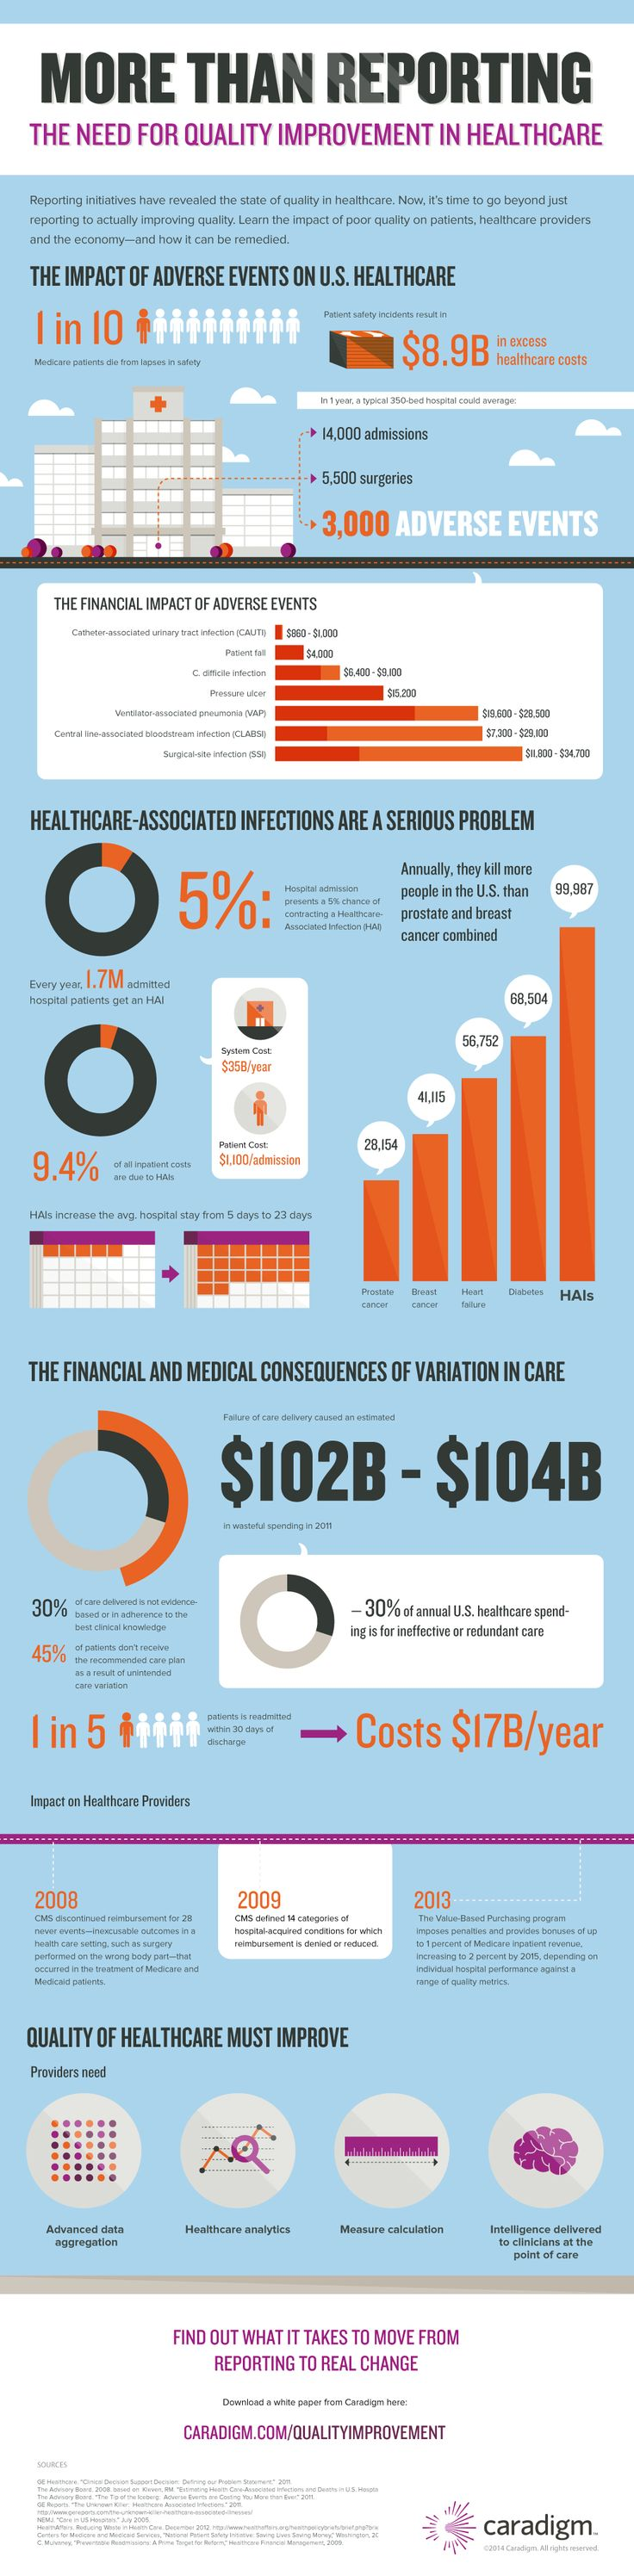 Healthcare Quality Reporting | New Visions Healthcare Blog #healthcare #quality #reports - www.healthcoverageally.com